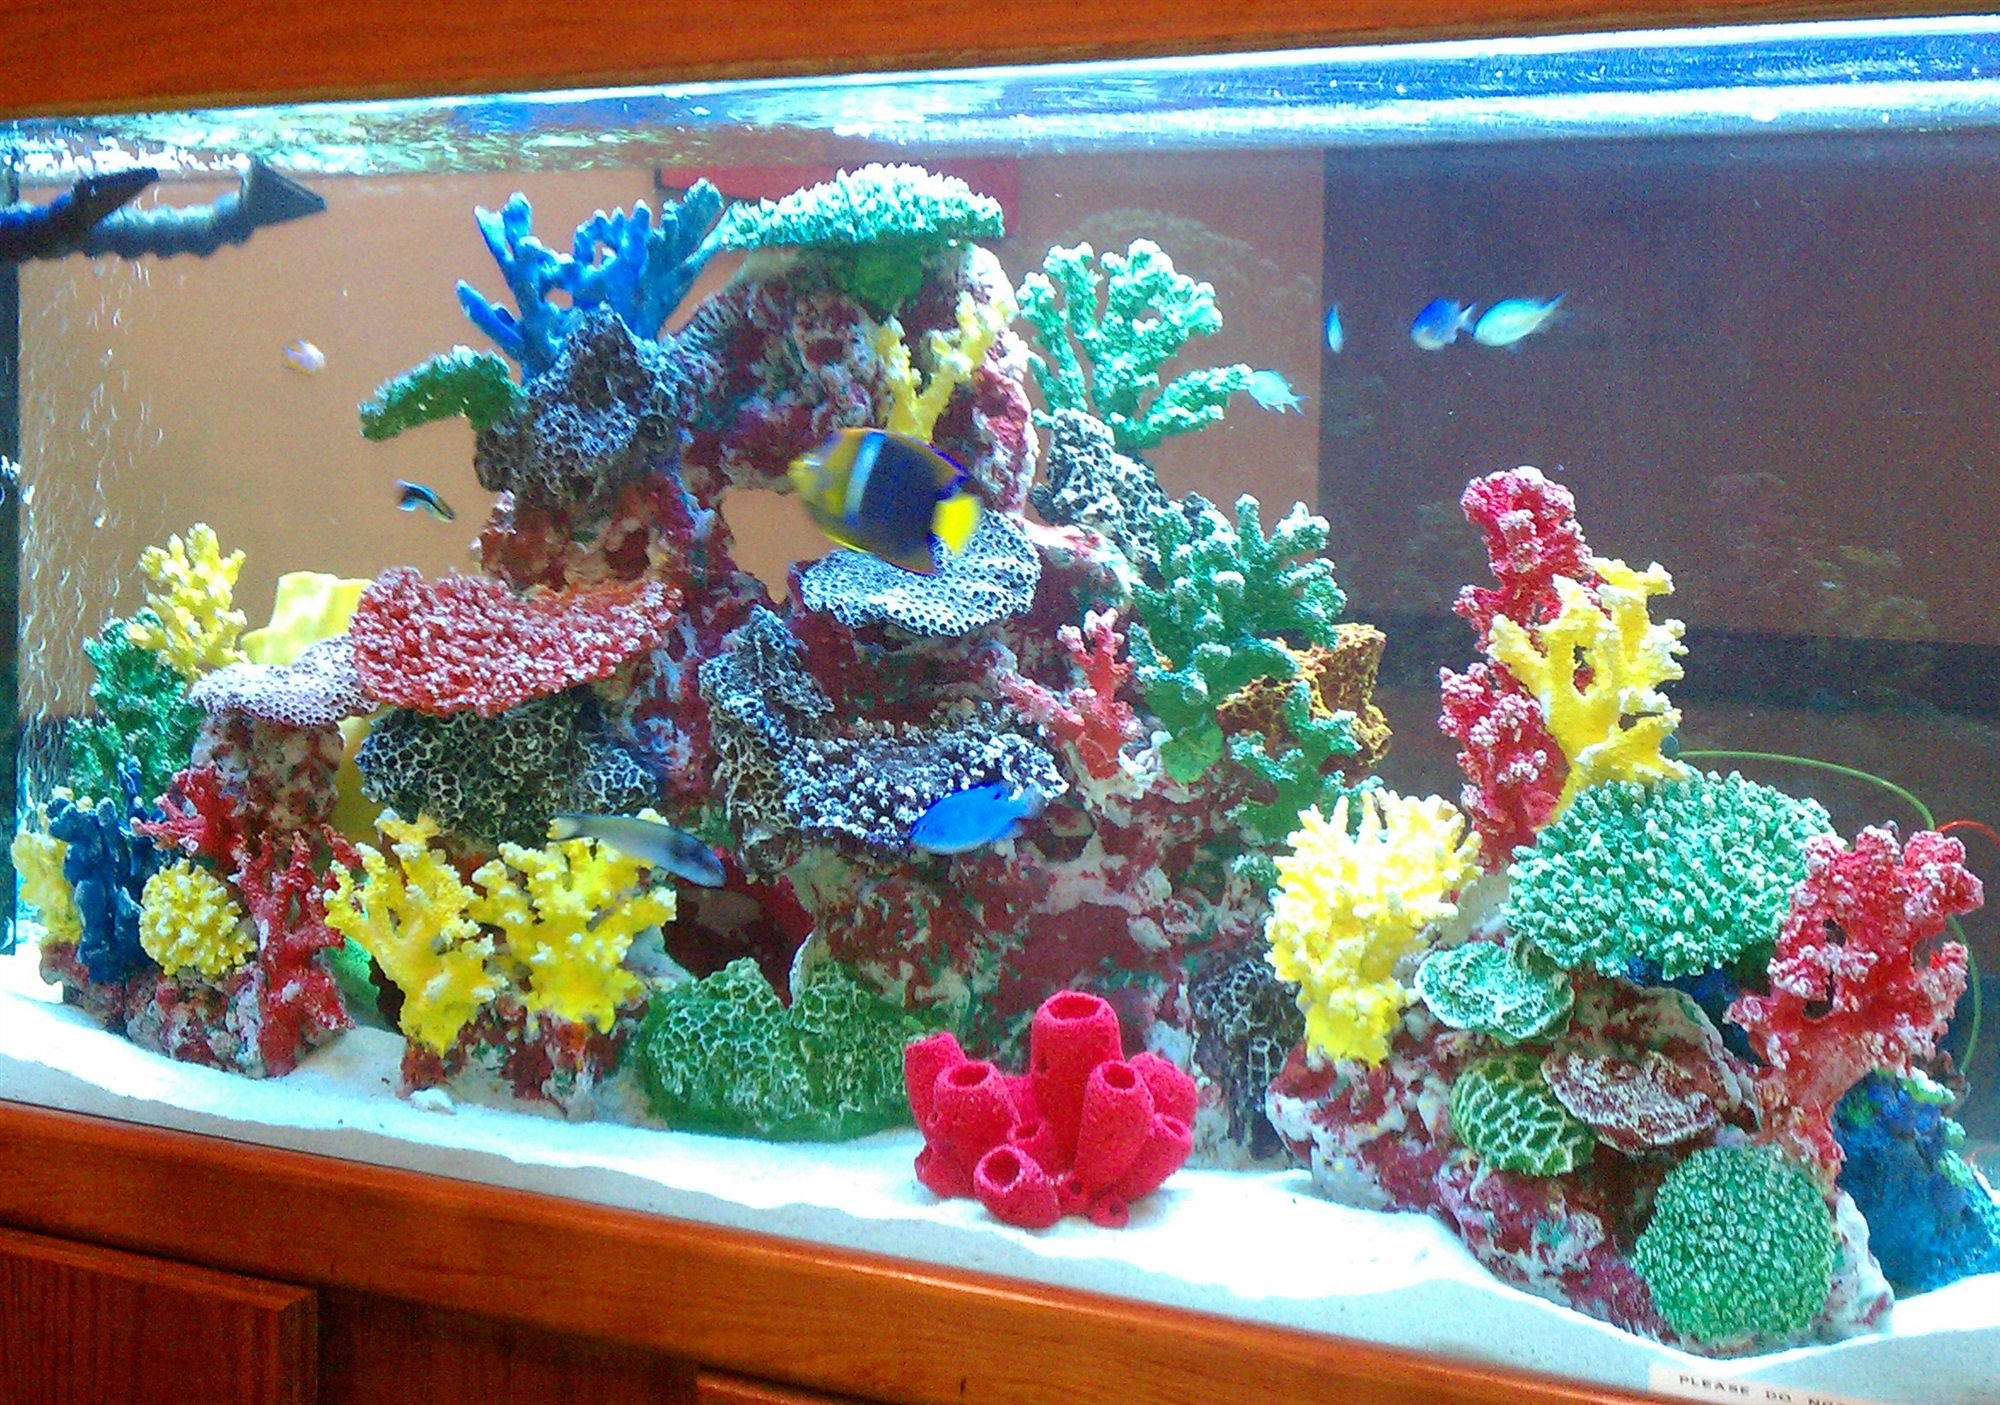 Instant Reef DM058 Artificial Coral Inserts Decor, Fake Coral Reef Decorations for Colorful Freshwater Fish Aquariums, Marine and Saltwater Fish Tanks 4